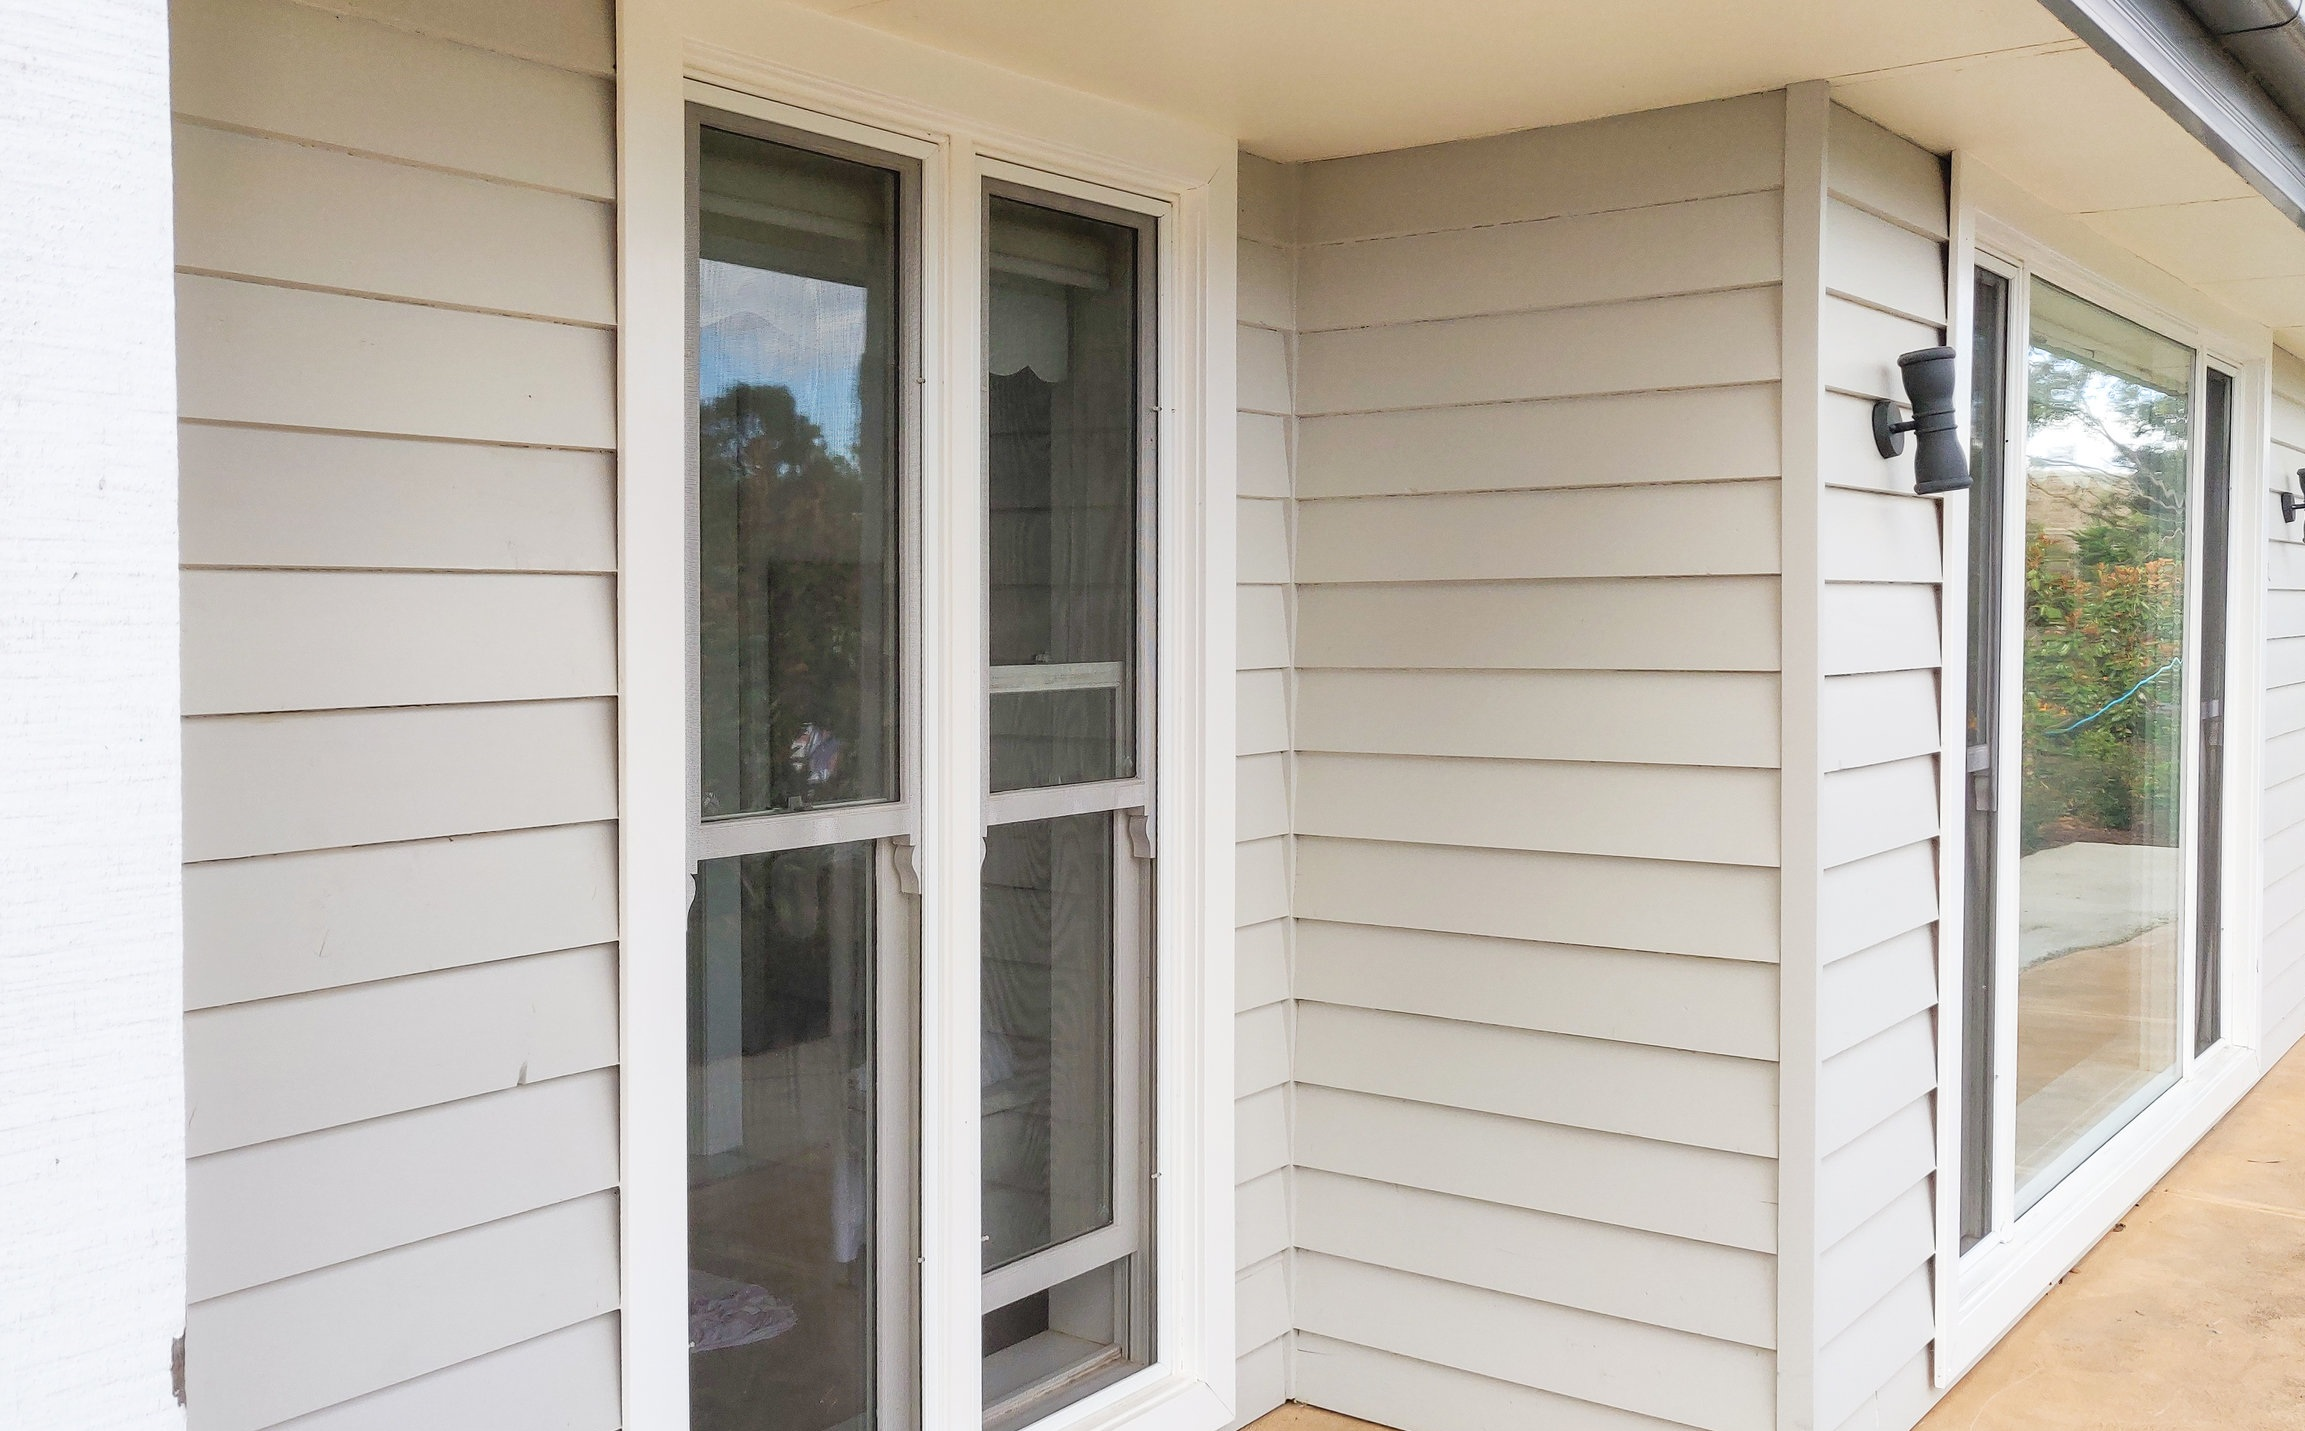 Featuring double hung windows with iconic white trim